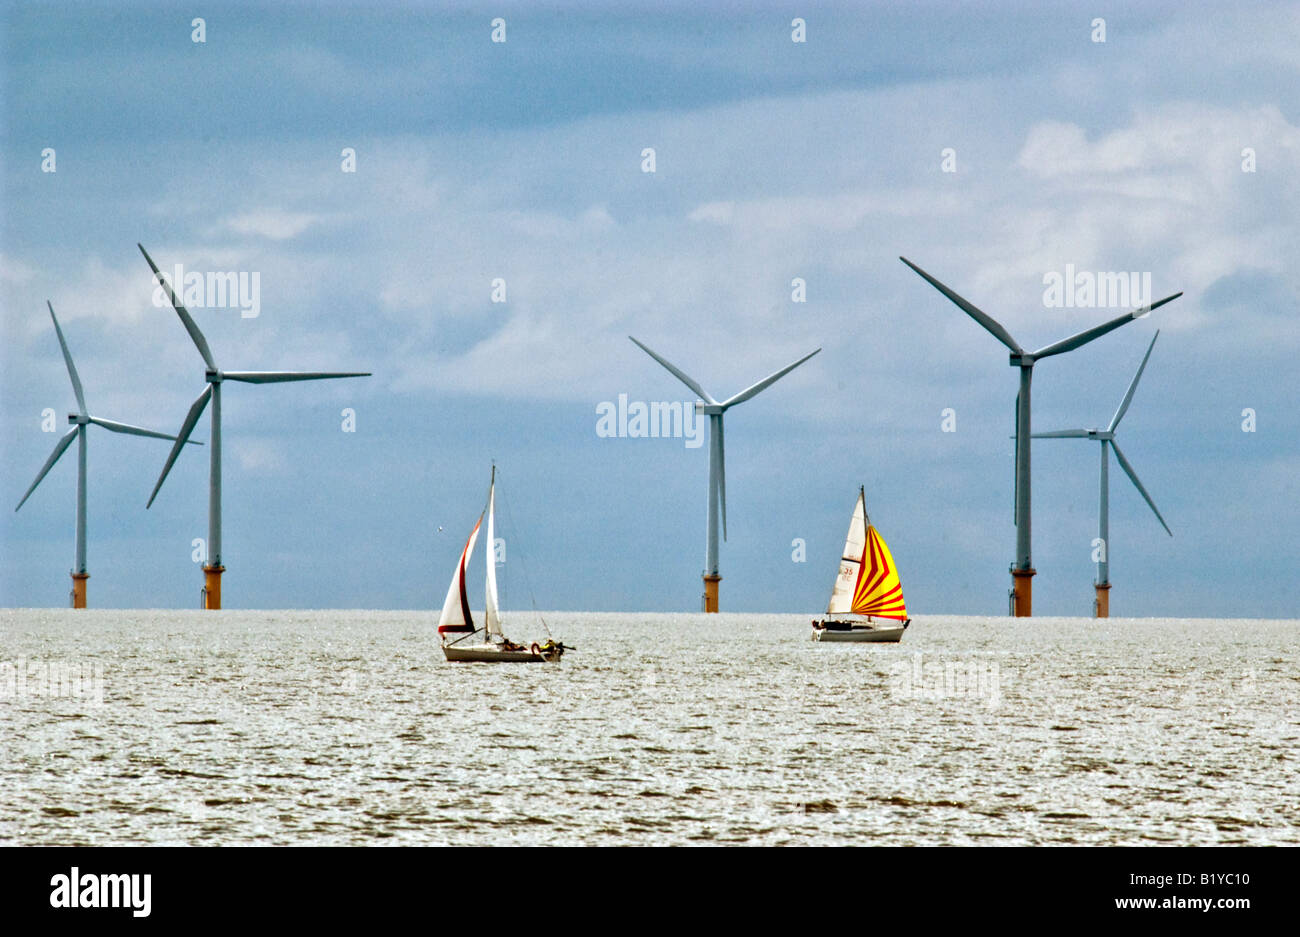 yachts-sail-by-giant-windmills-at-sea-on